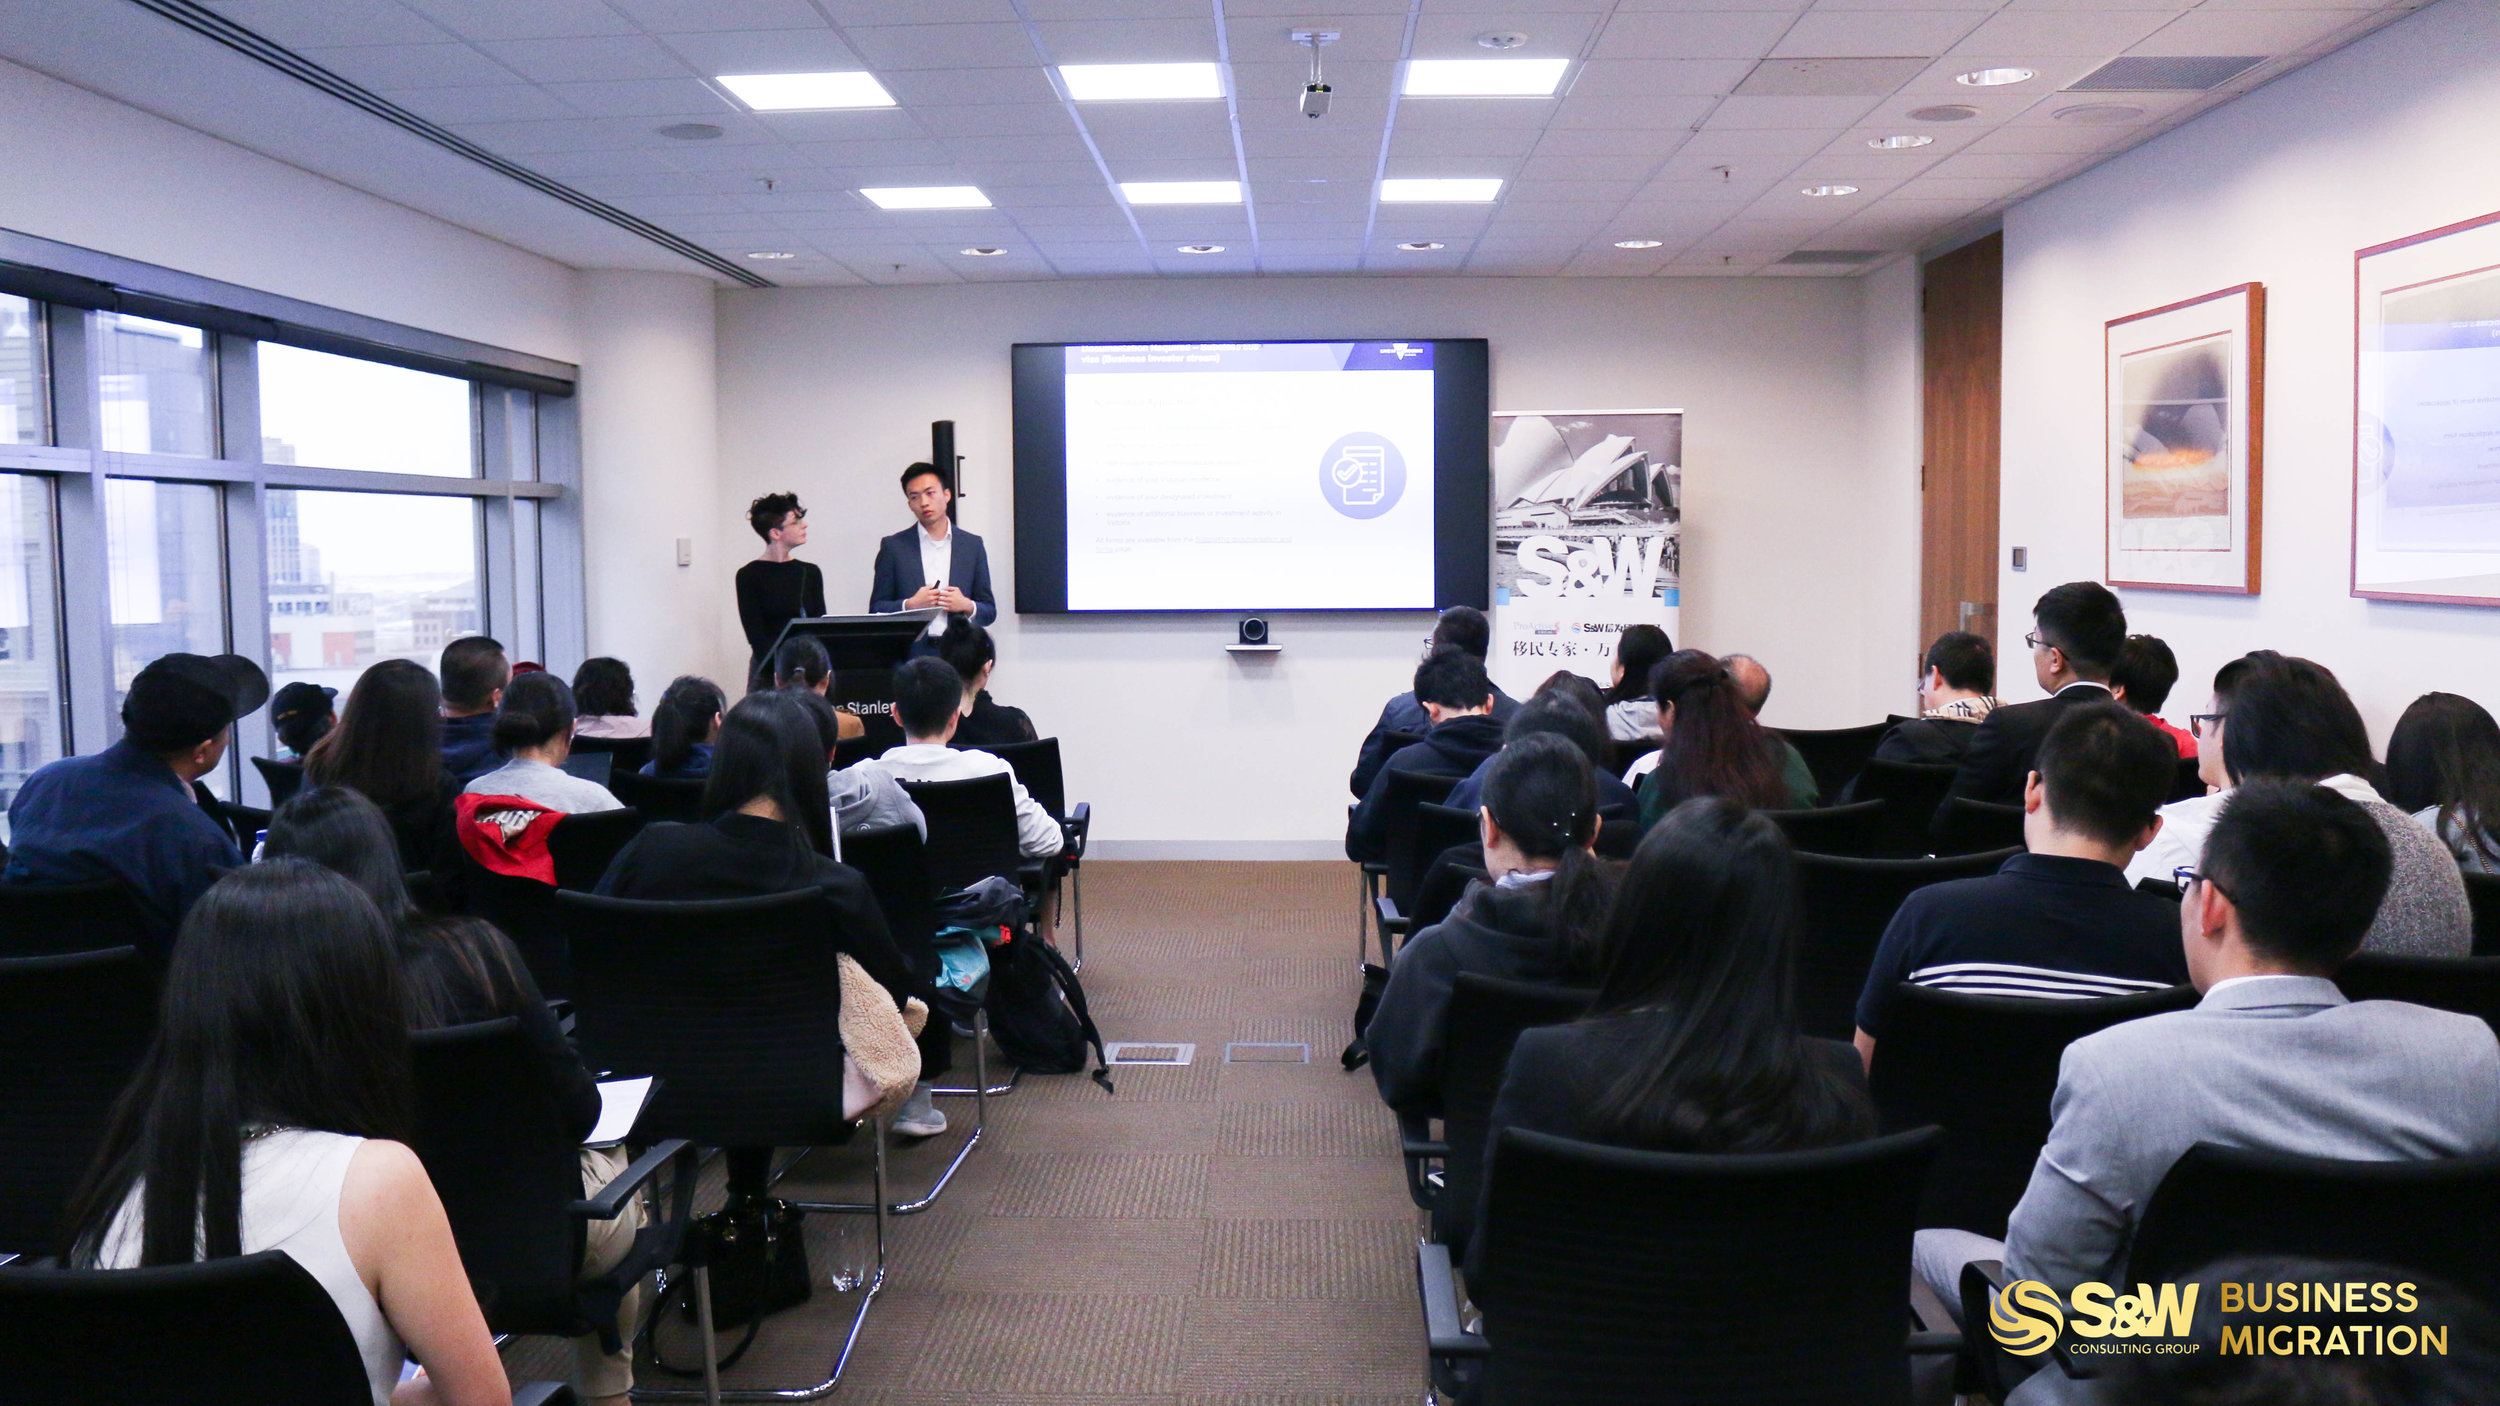 S&W Consulting Group's Business Migration Seminar in April 2019